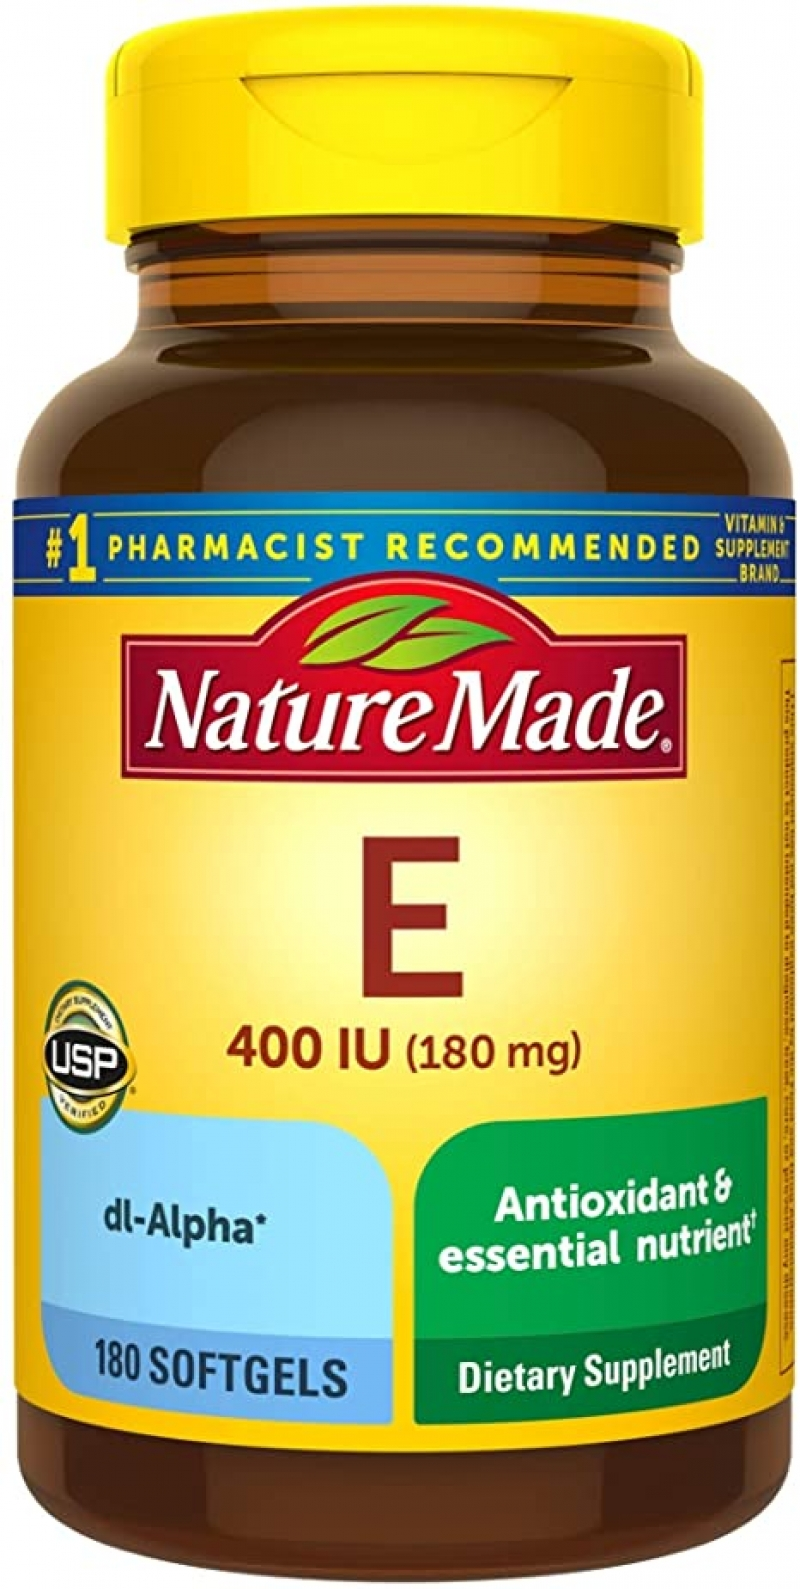 ihocon: Nature Made Vitamin E 180 mg (400 IU) dl-Alpha Softgels, 180 Count for Antioxidant Support